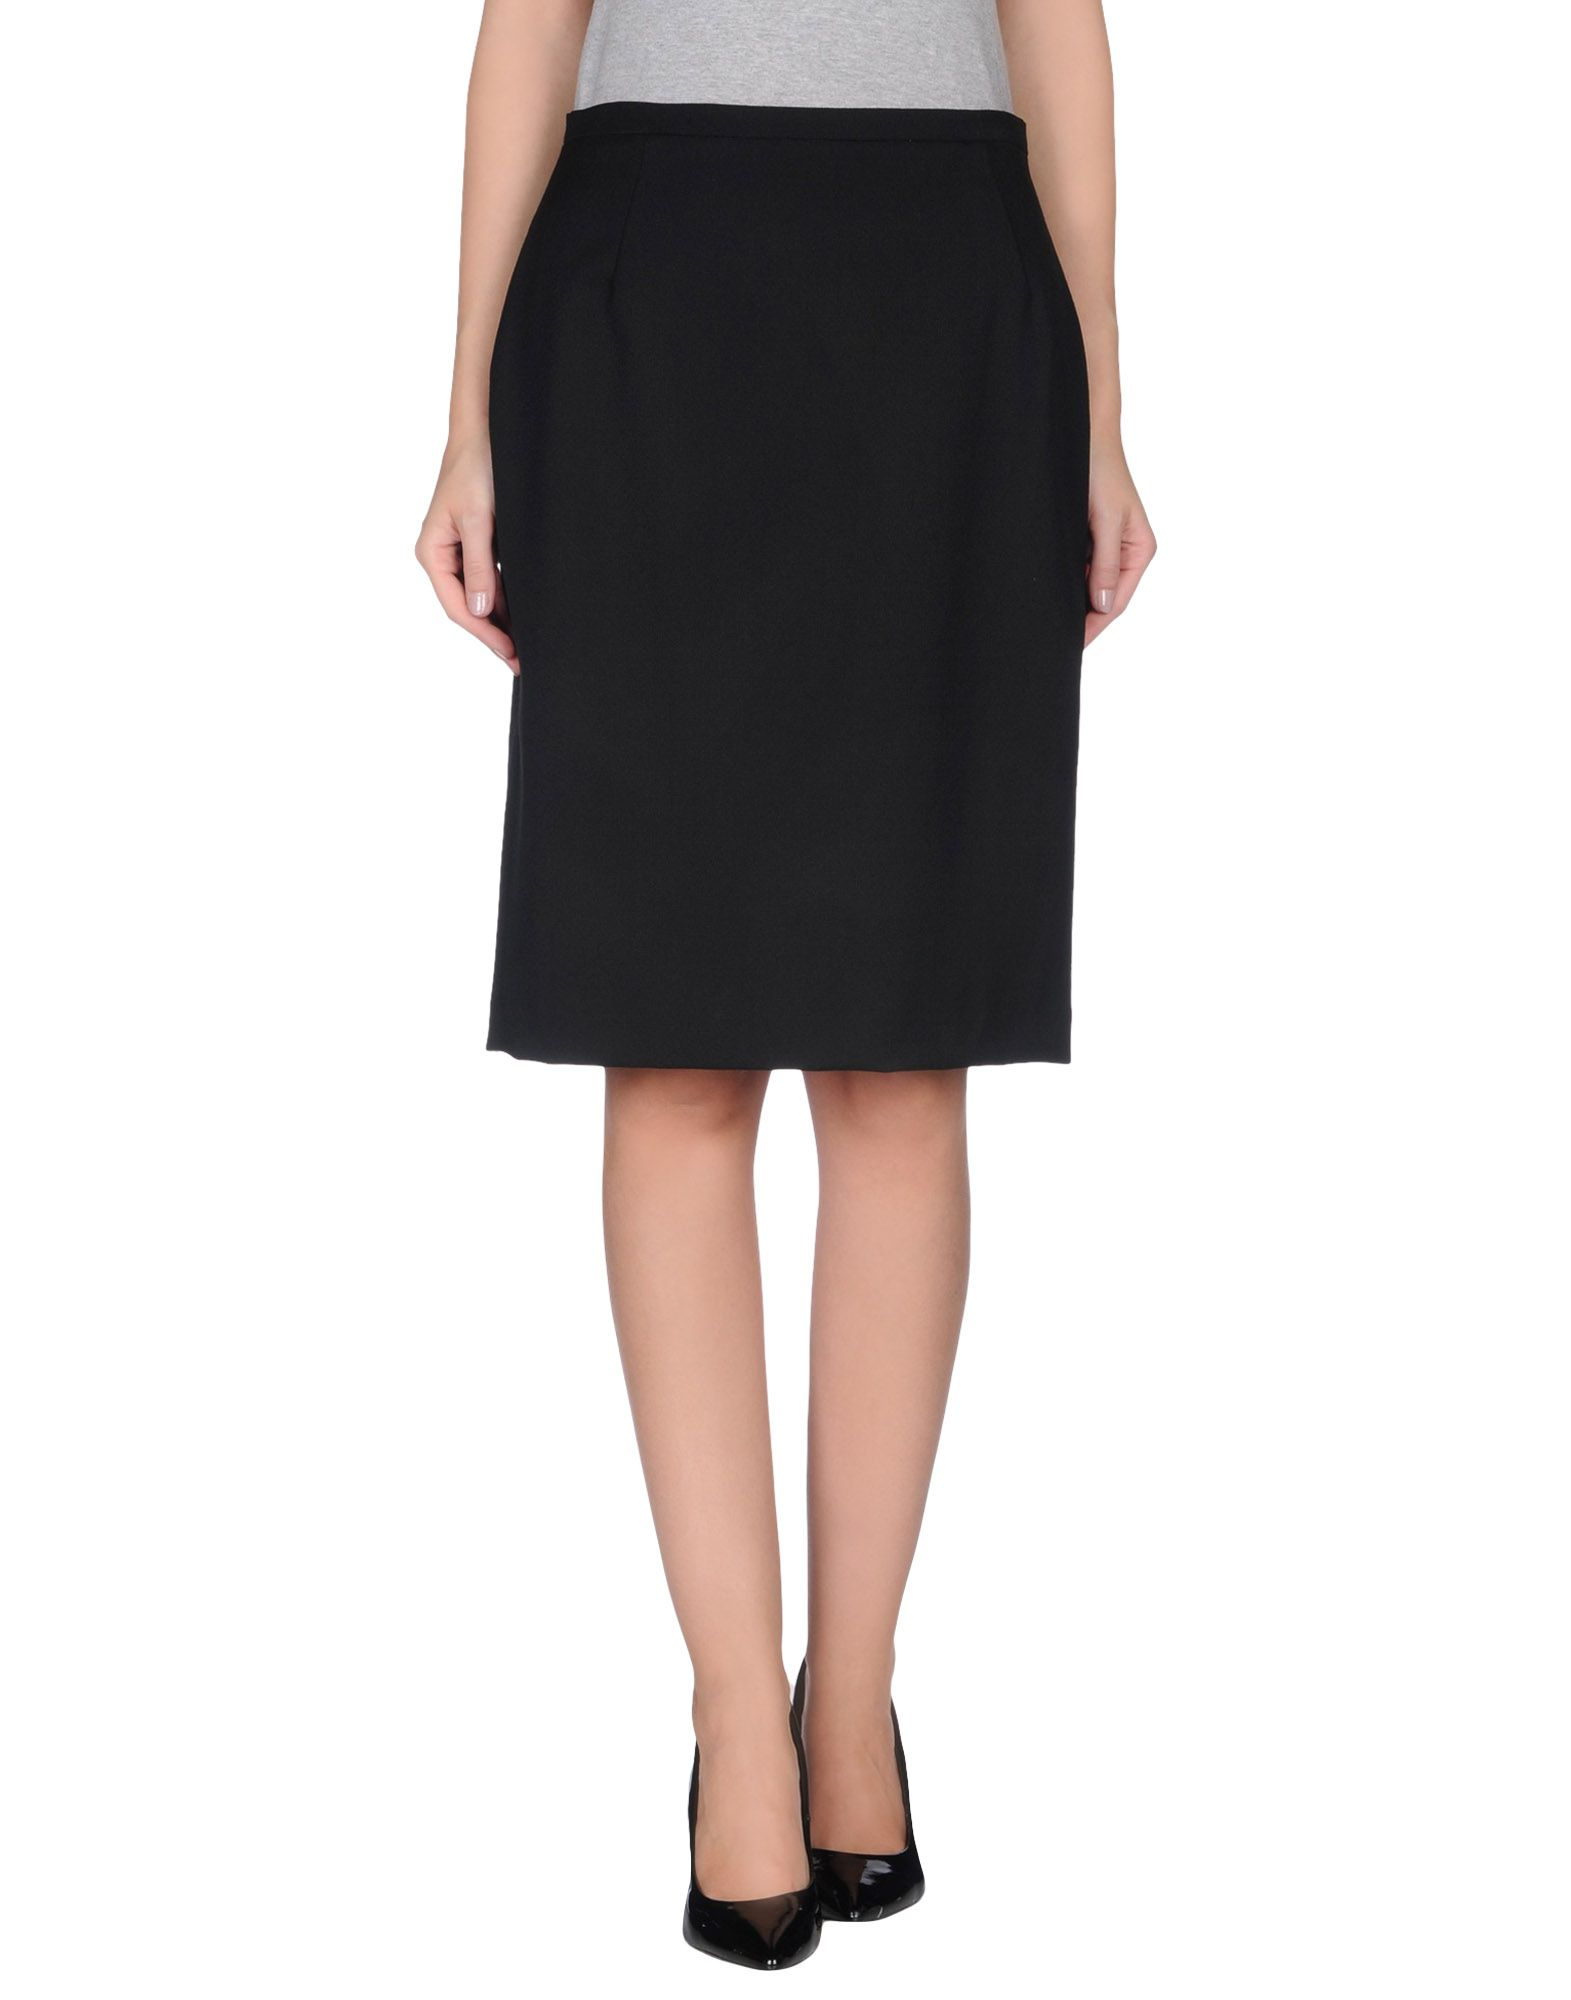 Maurizio pecoraro knee length skirts shop at ebates for Maurizio pecoraro shop on line